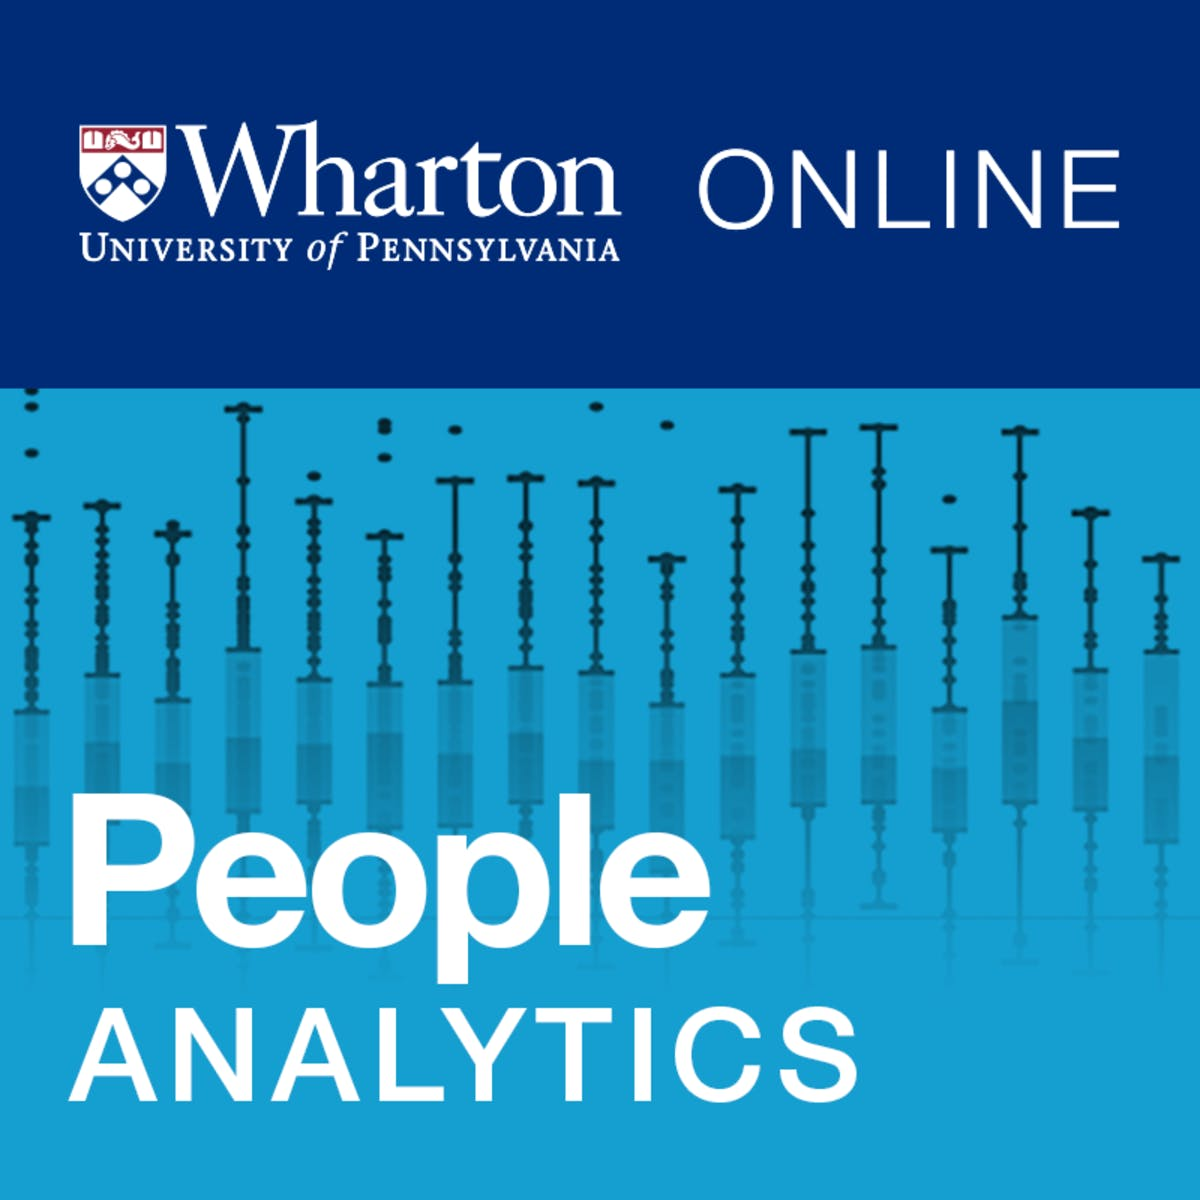 People Analytics